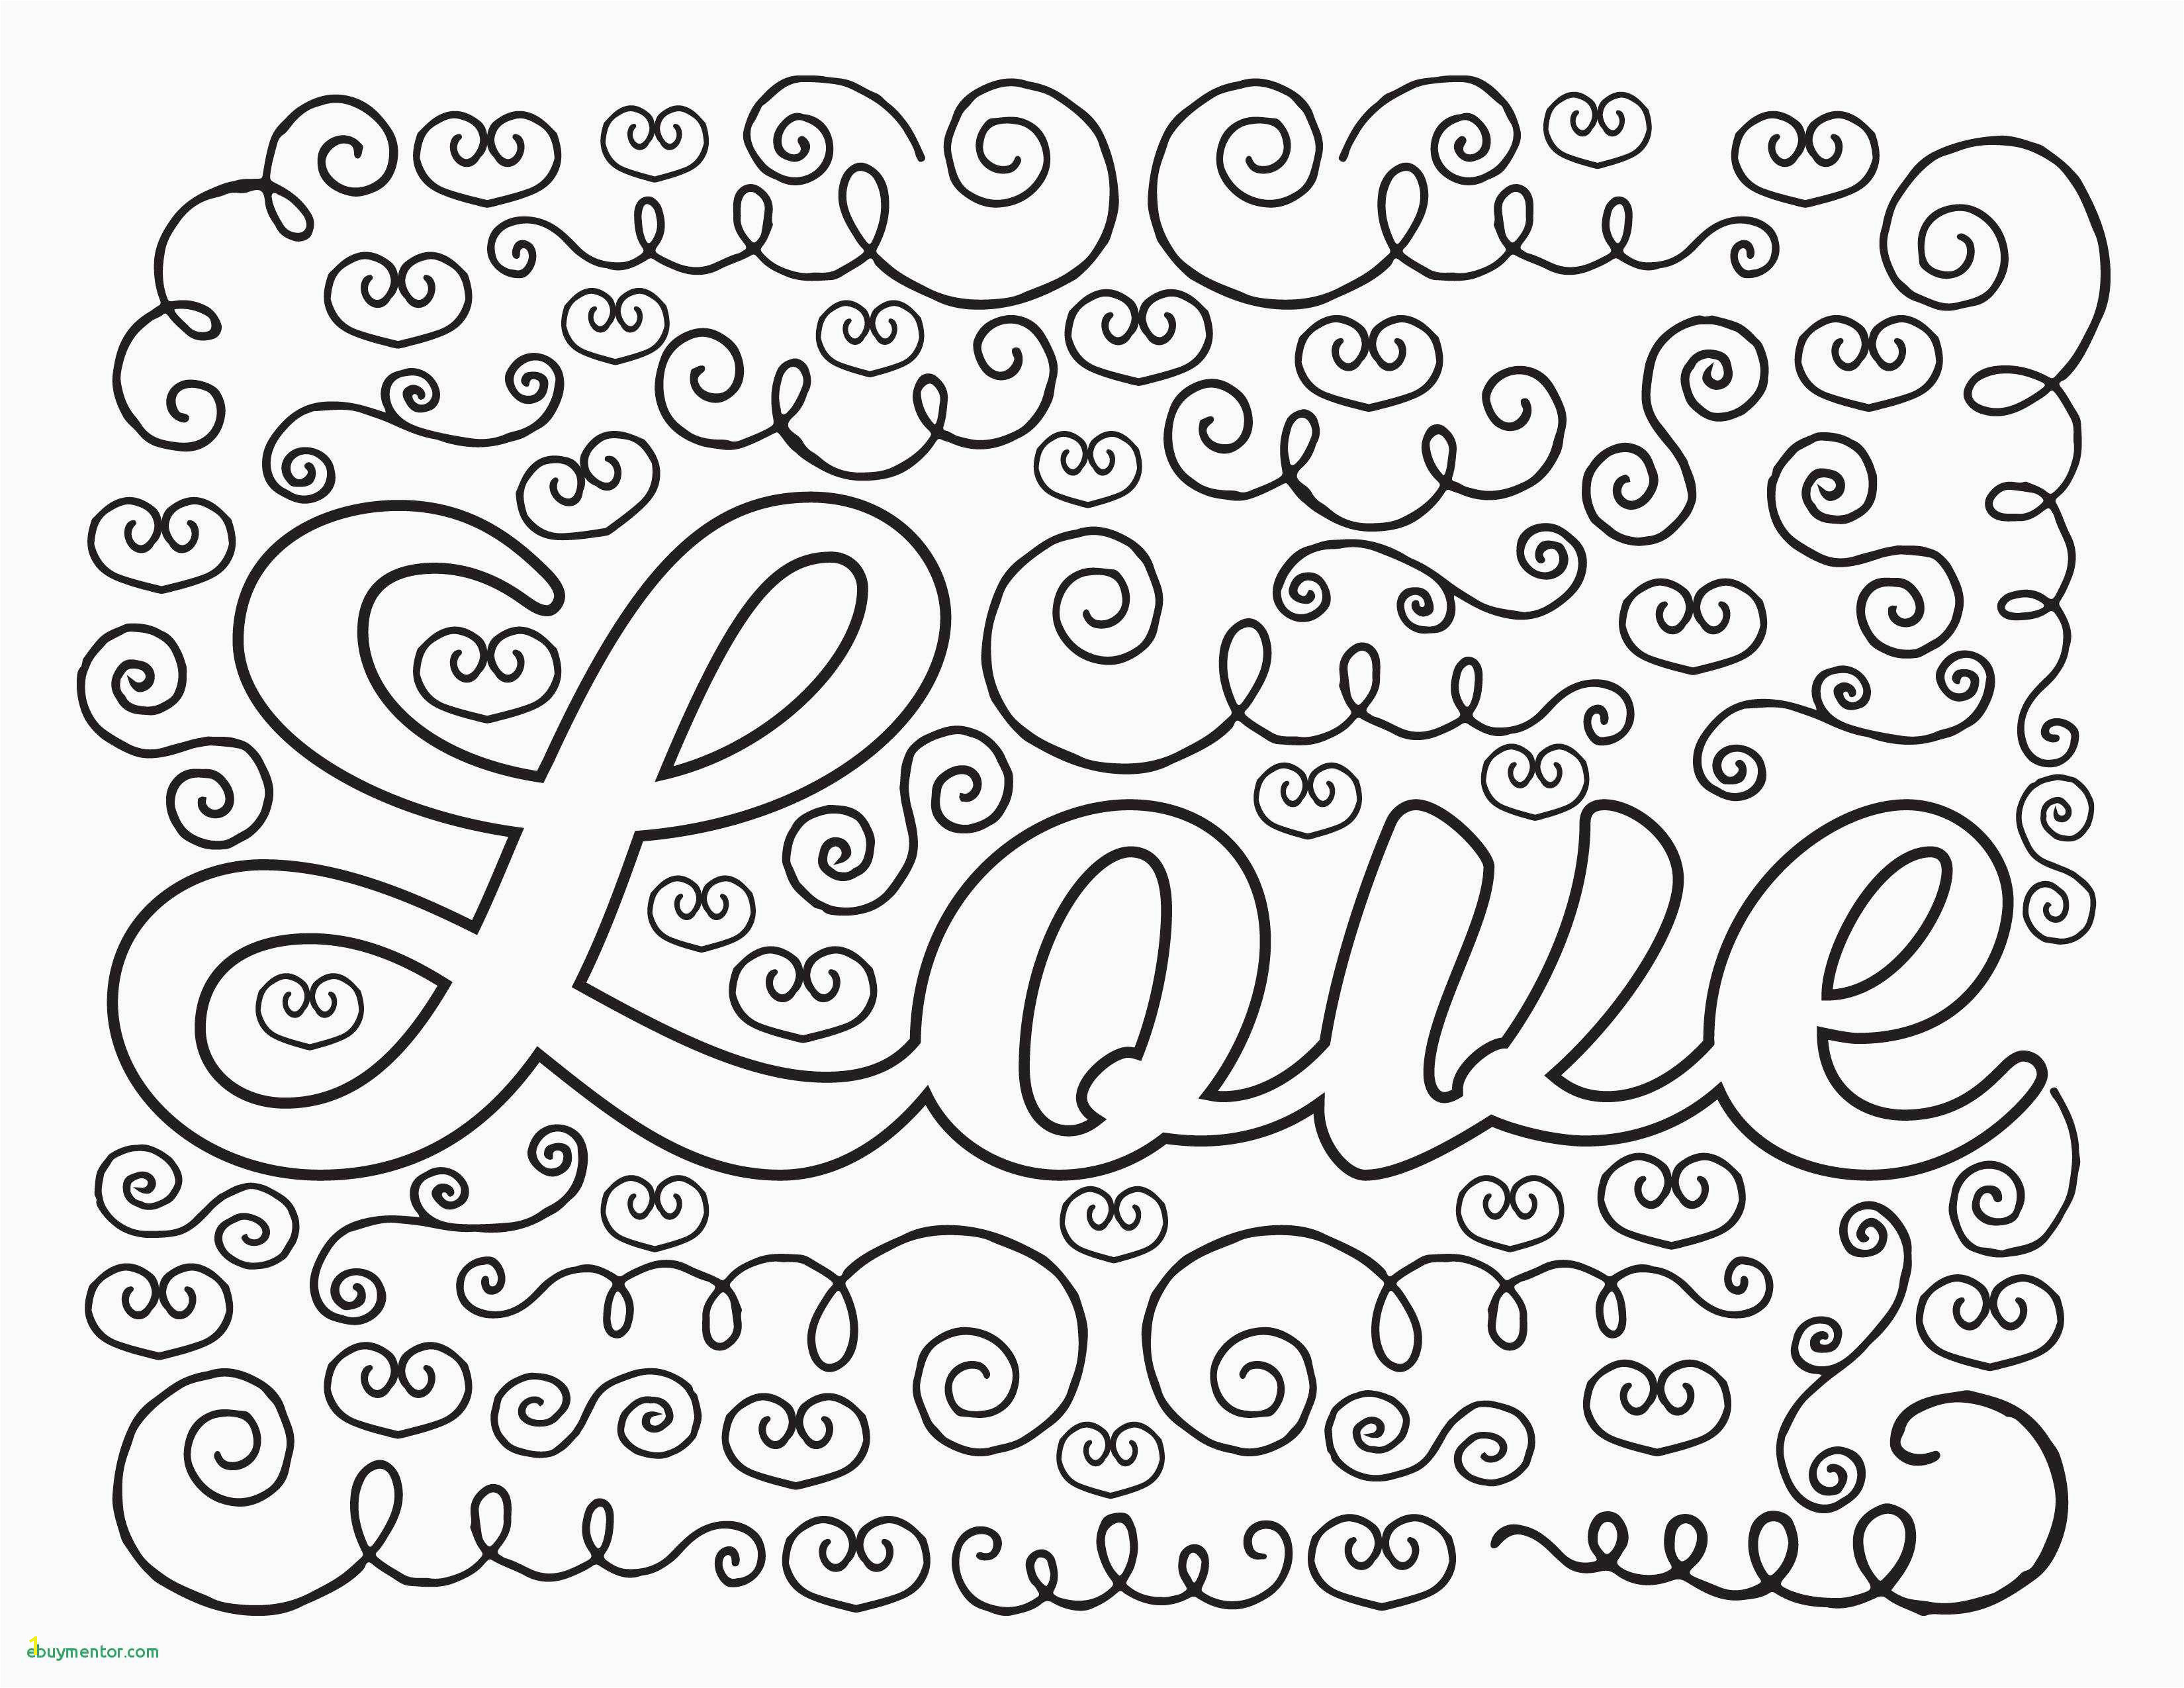 Free Printable Numbers Coloring Pages Color Number Coloring Pages Free Printable Kids Coloring Pages Beautiful